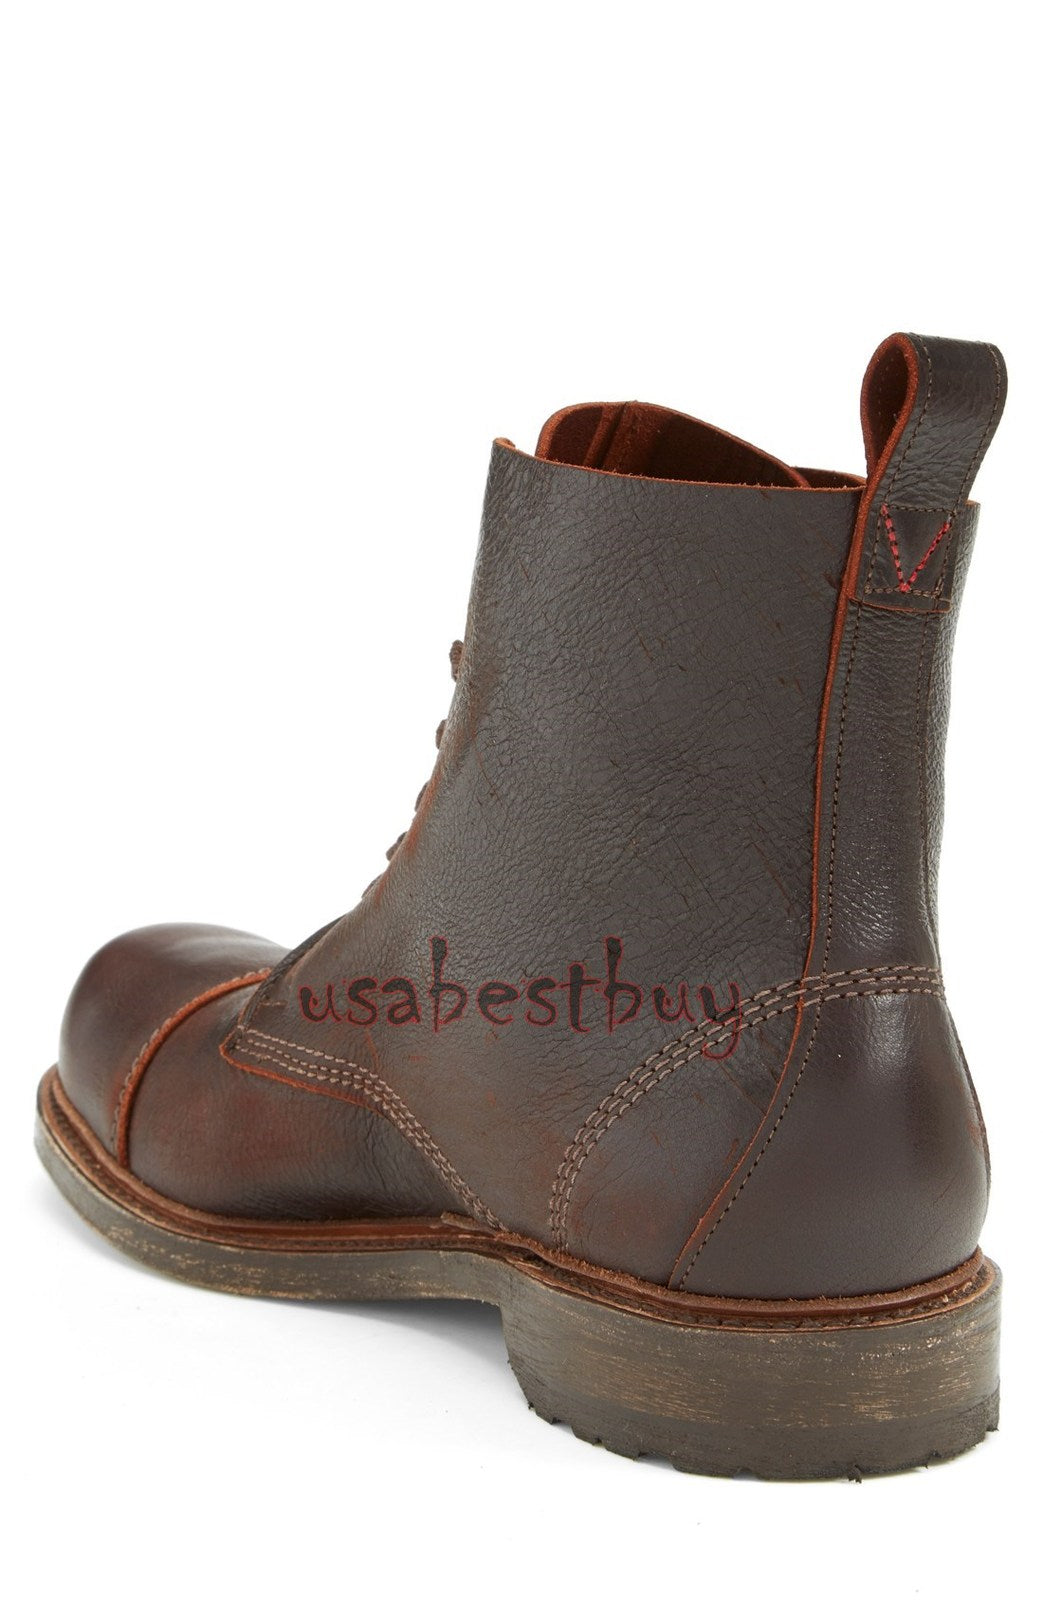 New Handmade Antique Style Real Leather Ankle Boots, Men Stylish leather boots